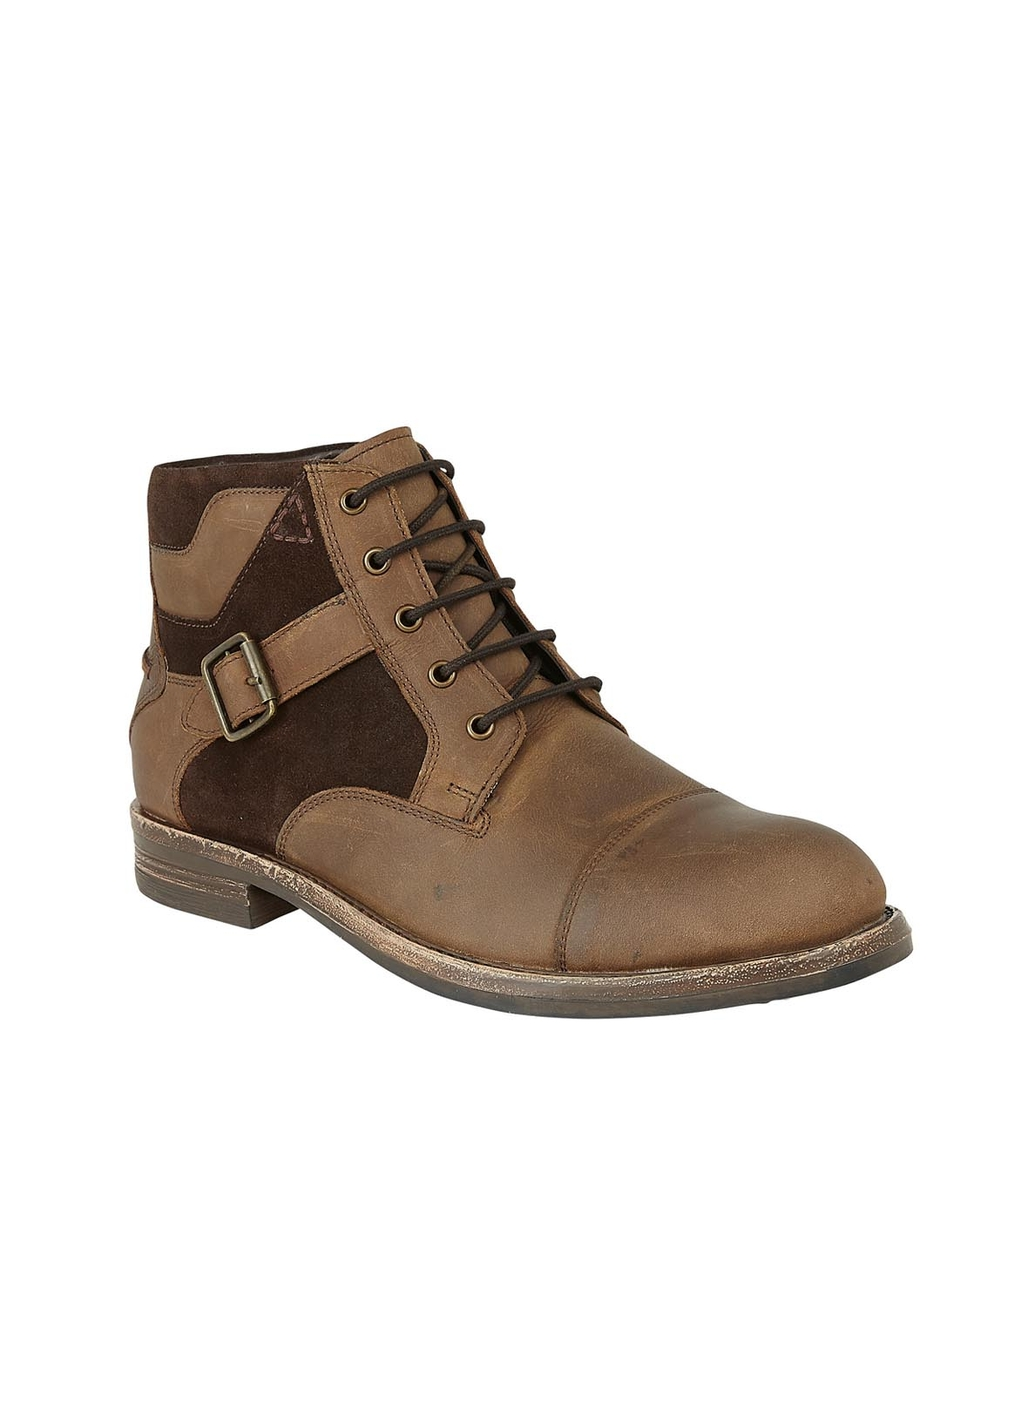 Lotus Irvine Leather & Suede Lace Up Boot in Brown